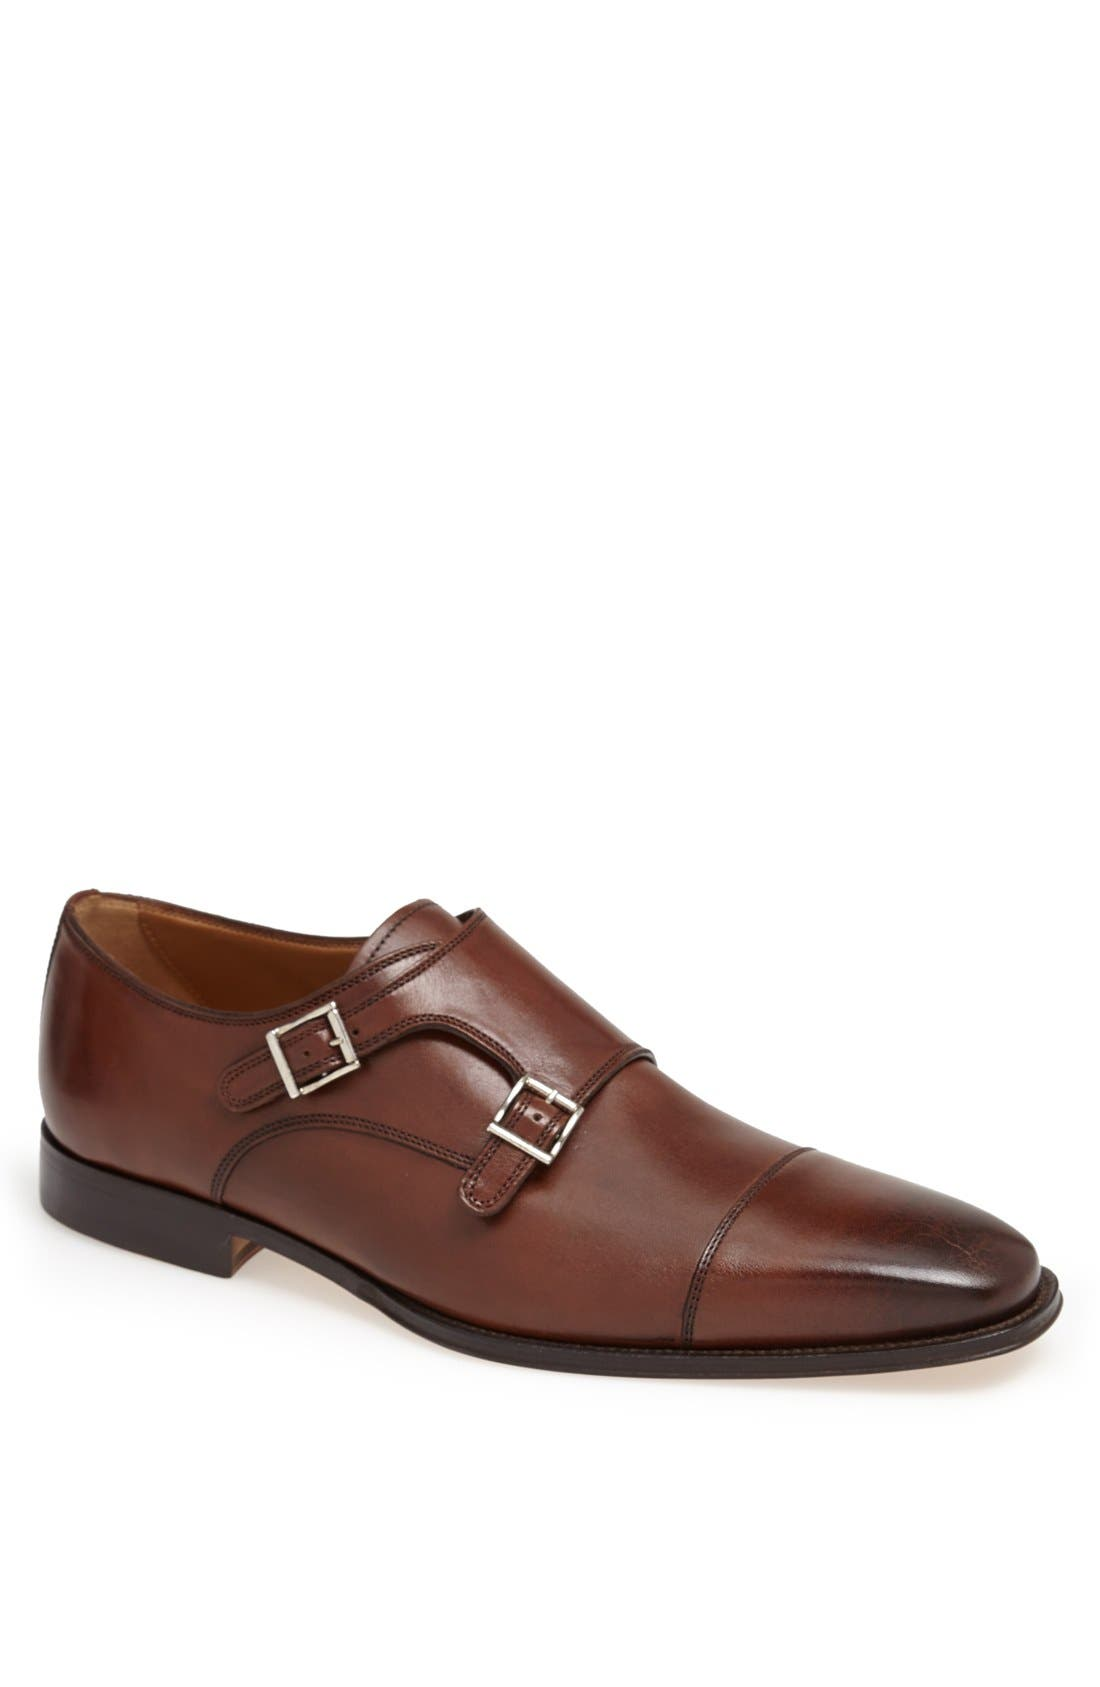 'Classico' Double Monk Strap Slip-On,                             Main thumbnail 1, color,                             Brown